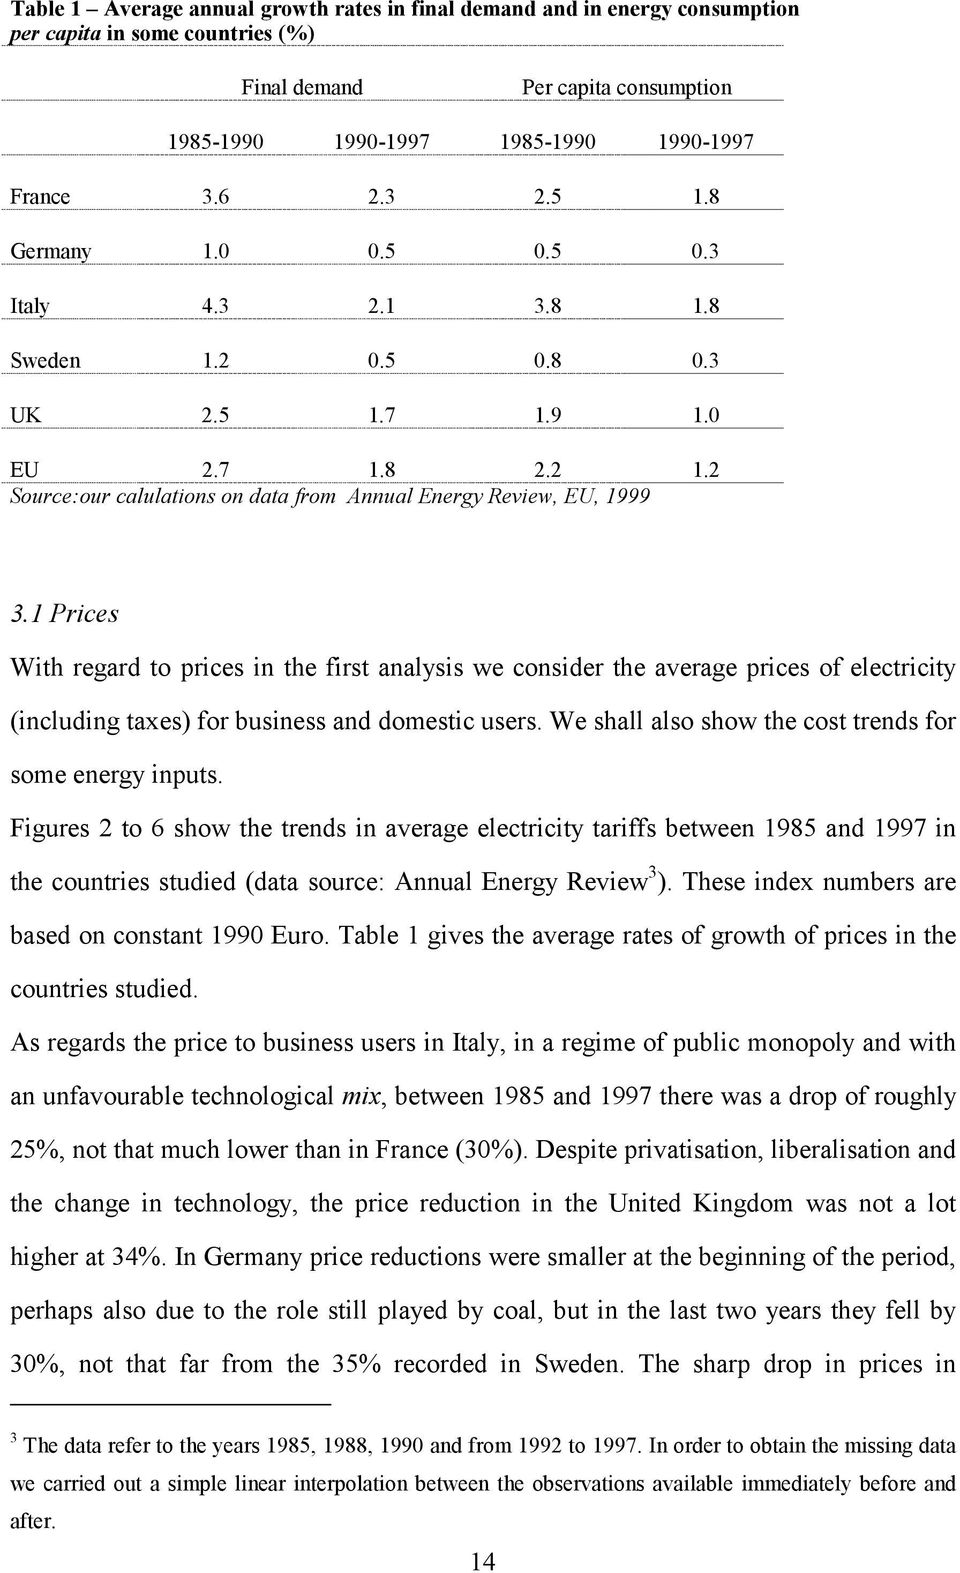 1 Prices With regard to prices in the first analysis we consider the average prices of electricity (including taxes) for business and domestic users.